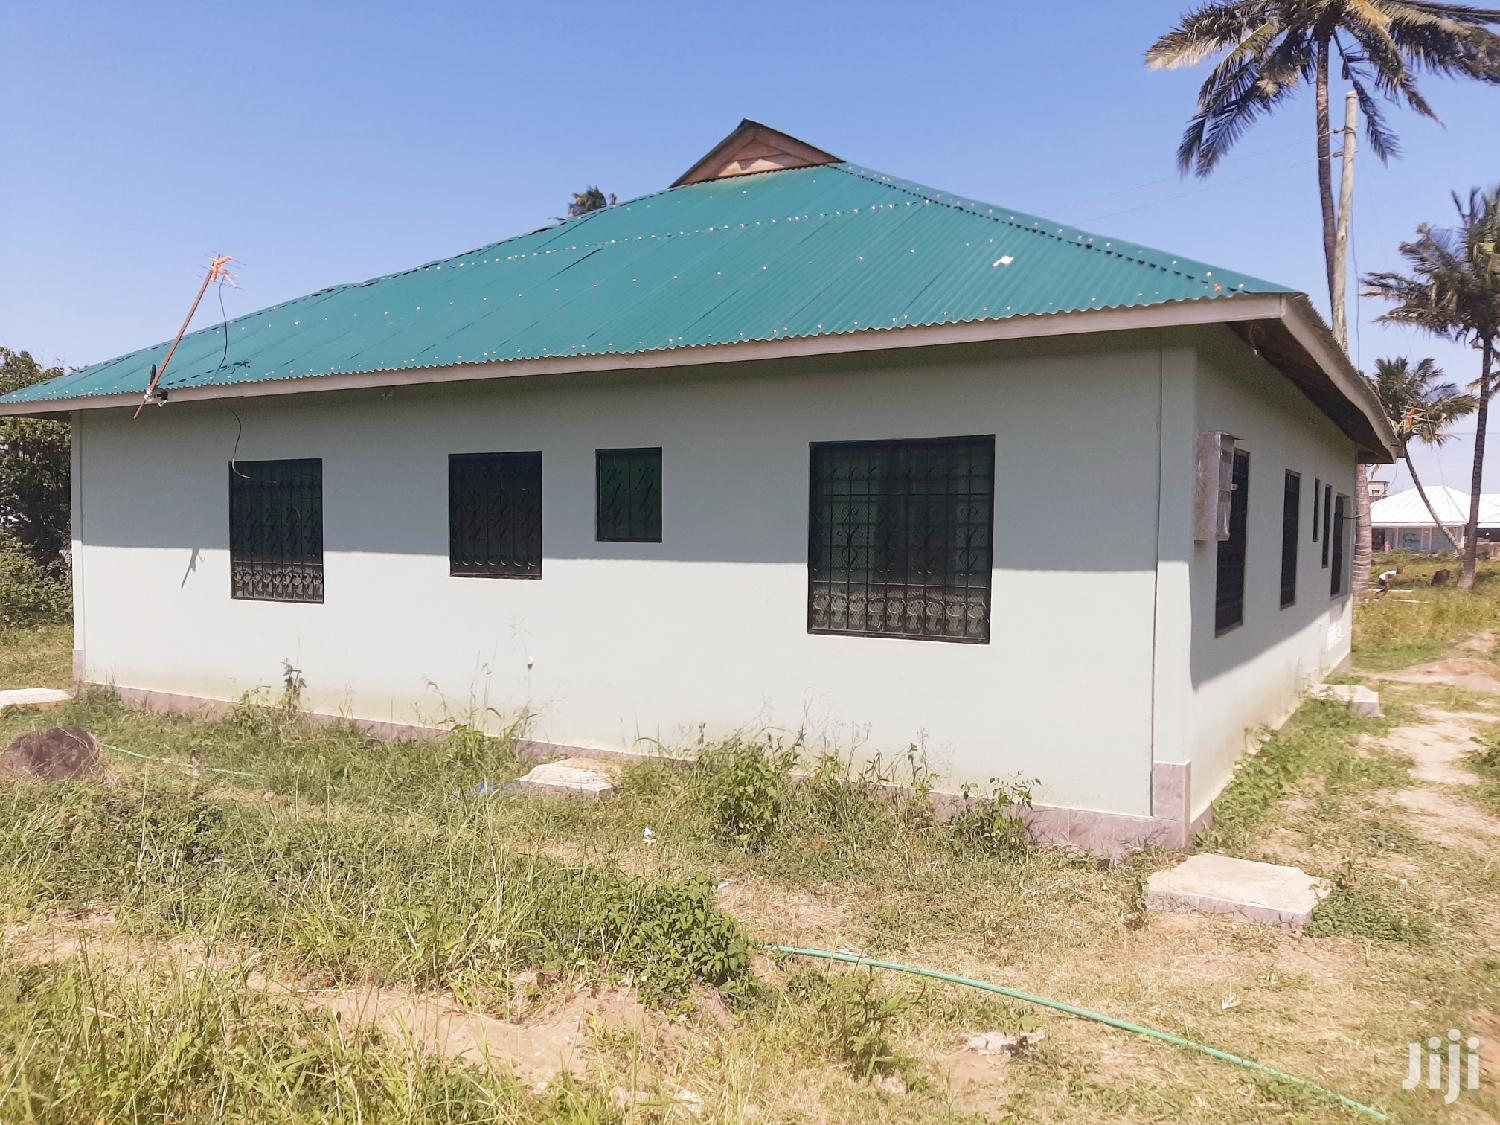 Brand New 3 Units One Bedroom House For Sale In Bamburi | Houses & Apartments For Sale for sale in Kisauni, Mombasa, Kenya